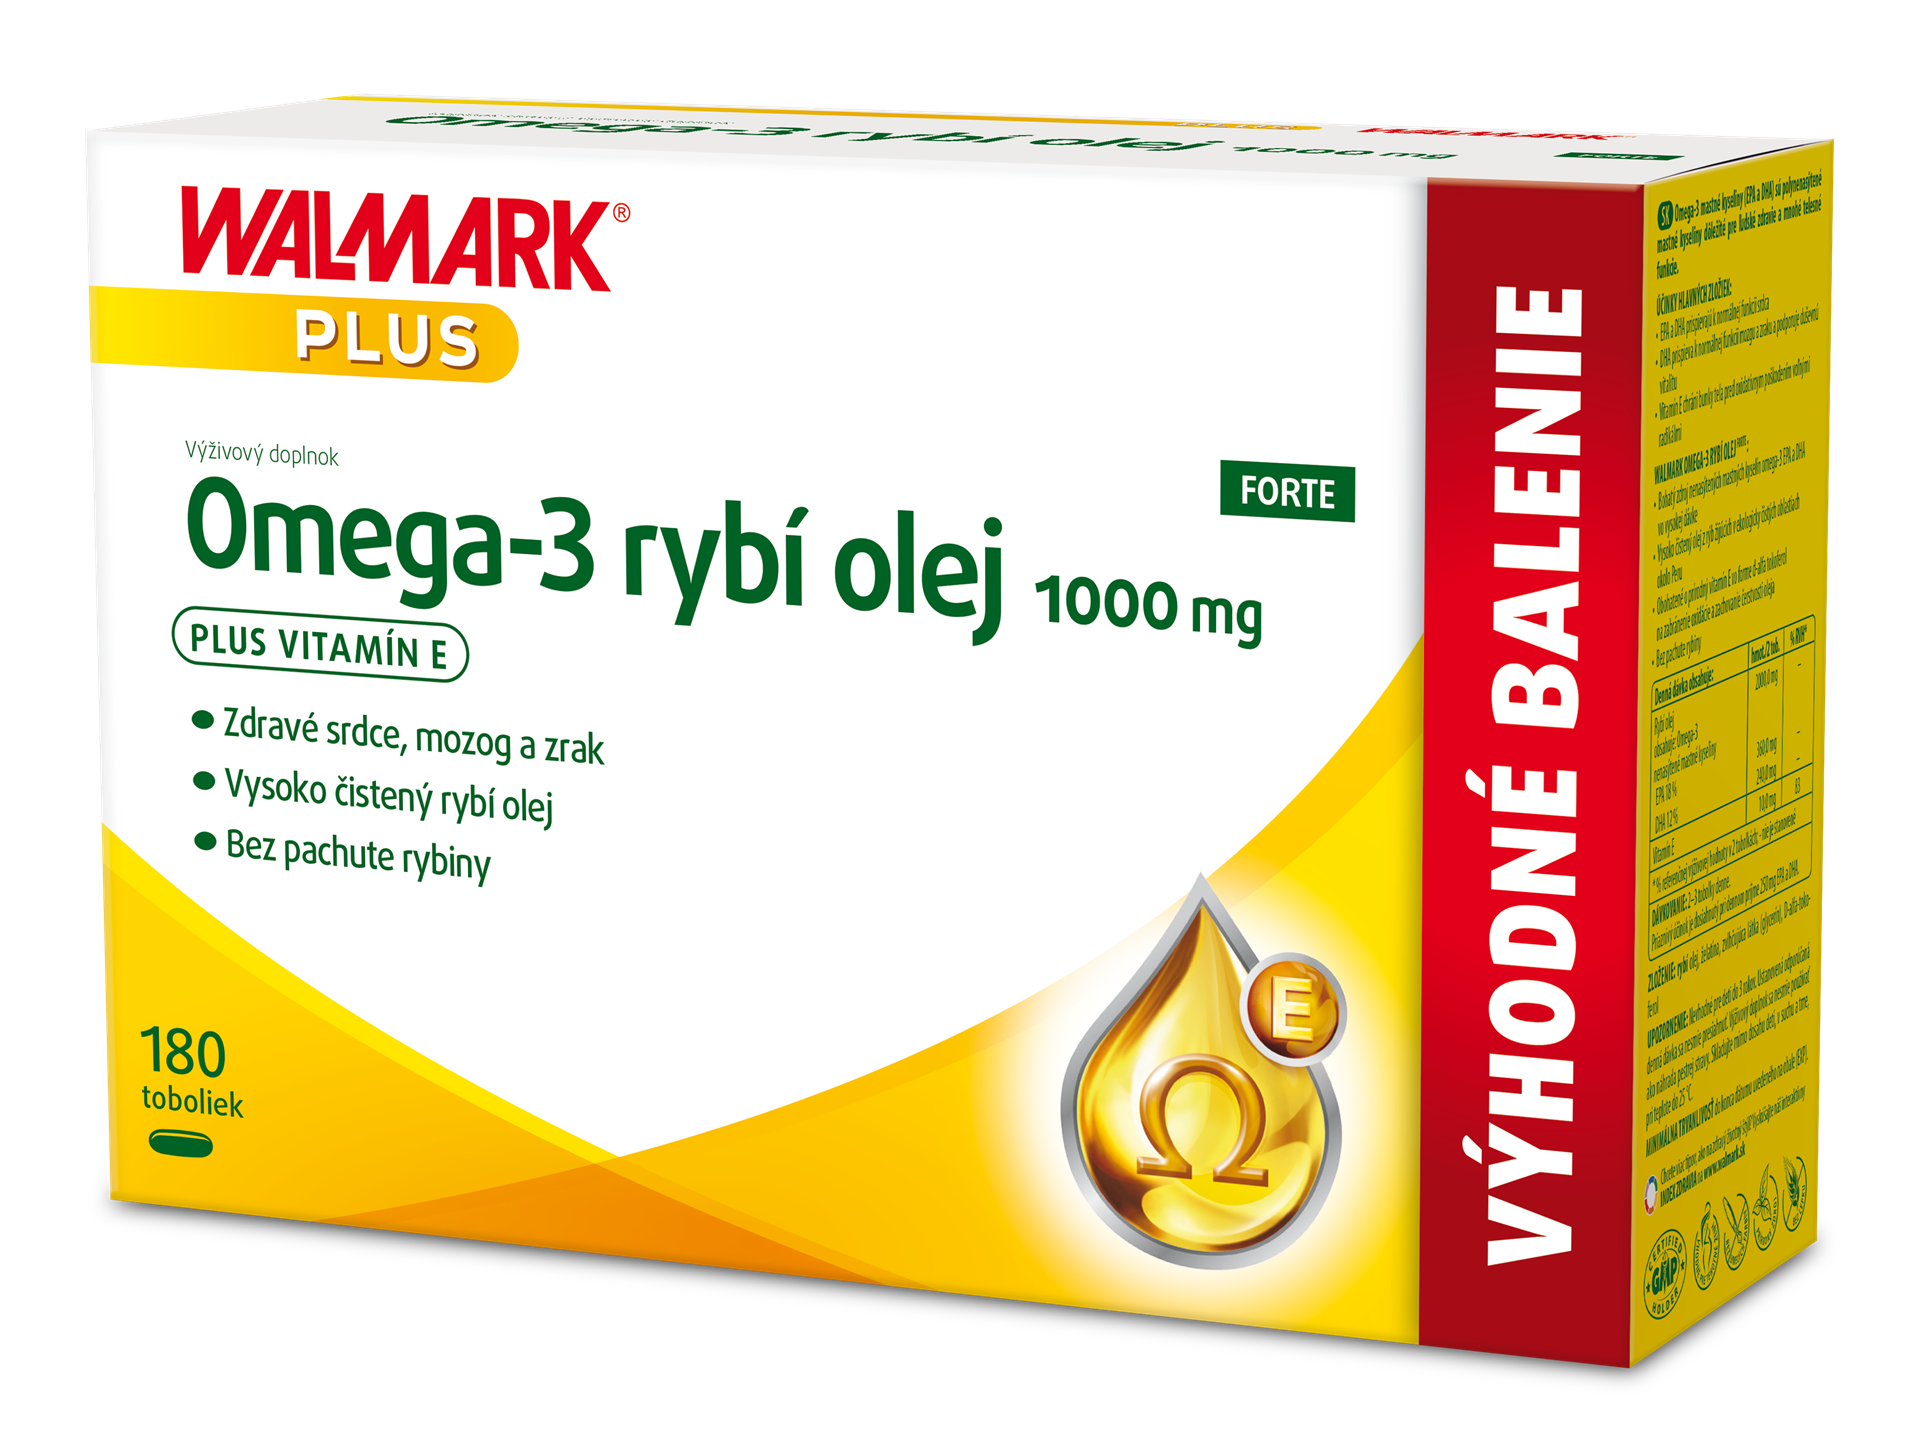 Omega-3-fish-oil-1000mg-Forte_180-_BOX_SLO_3D_R_W14359-S-01-CZE-SLO-(1).PNG